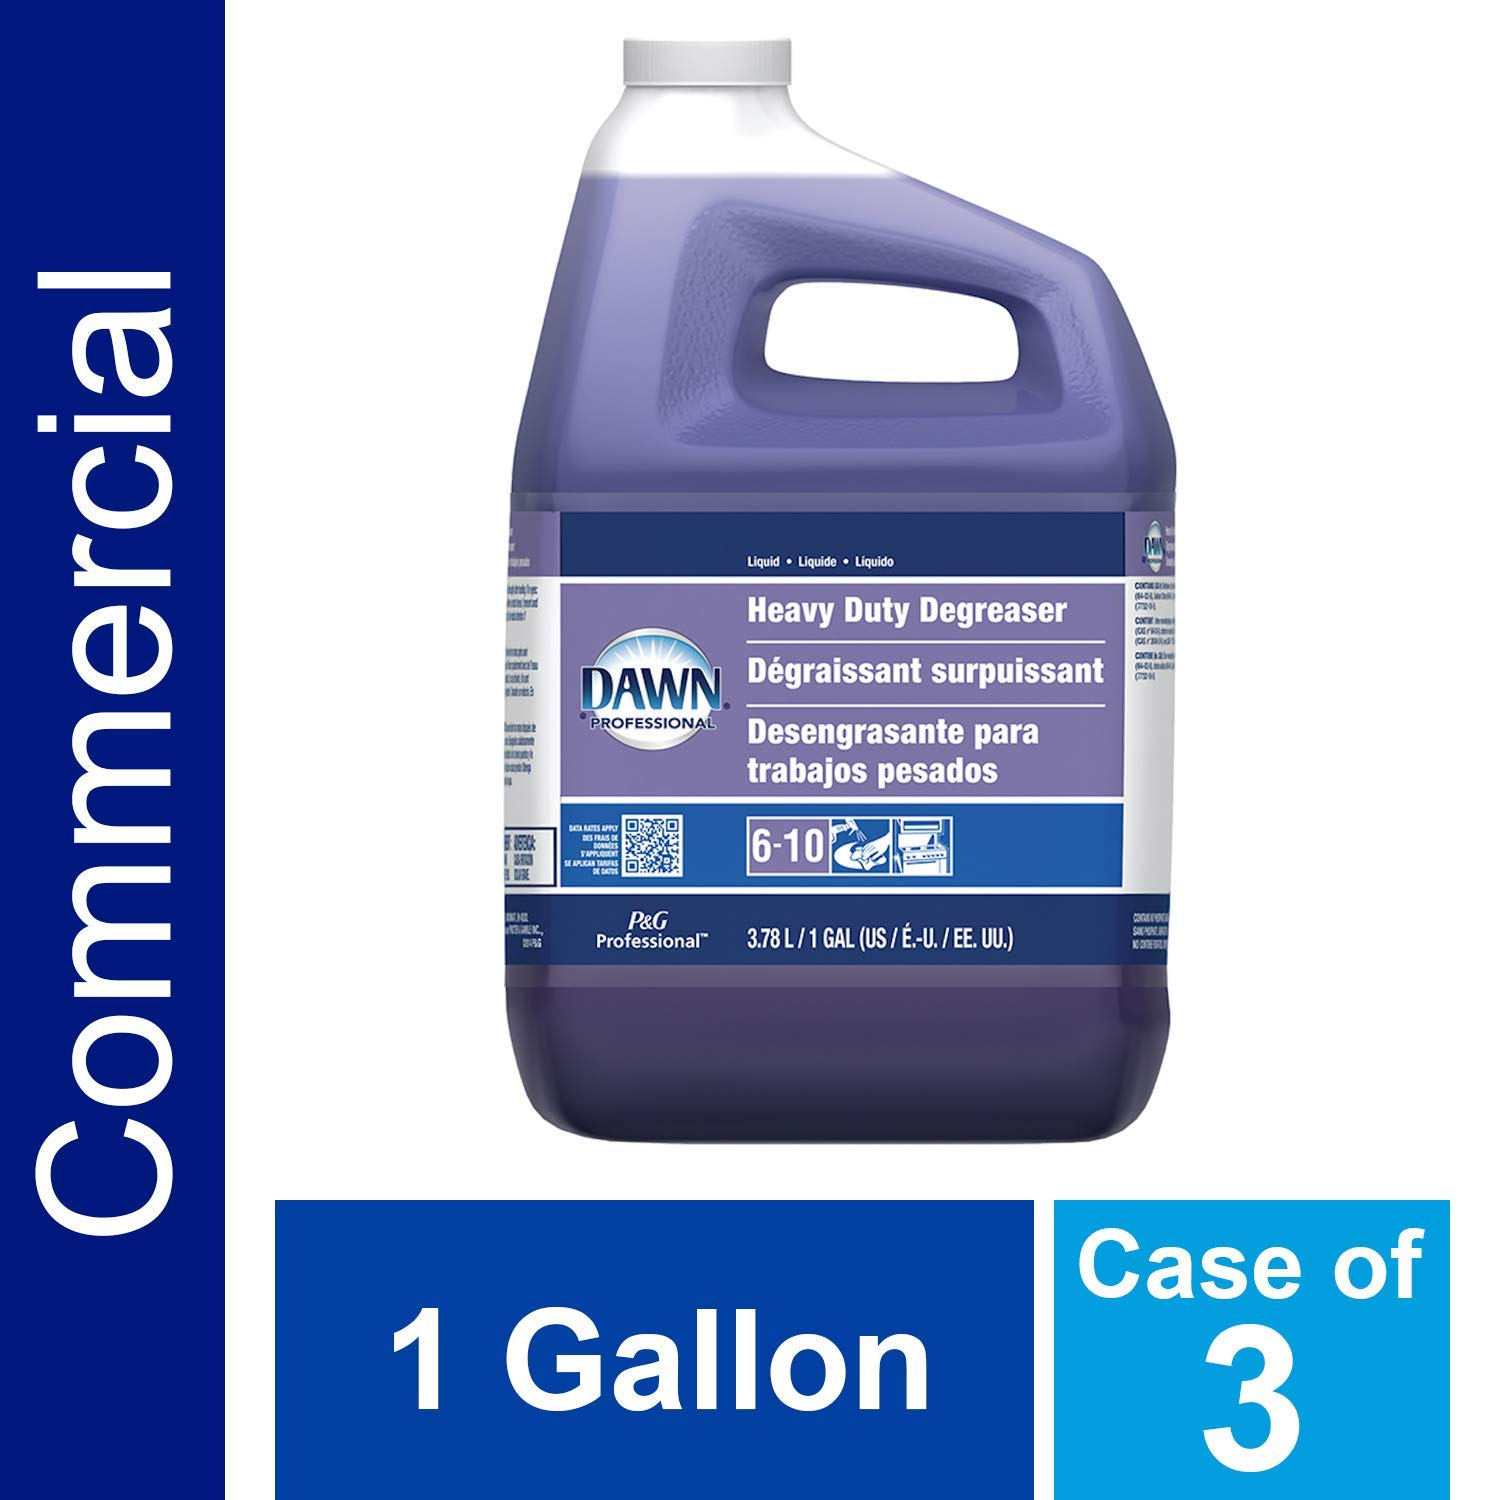 Heavy Duty Degreaser by Dawn Professional, Bulk Liquid Degreaser Refill for Commercial Restaurant Kitchens and Bathrooms, 1 gal. (Case of 3) (Renewed) by P&G Professional